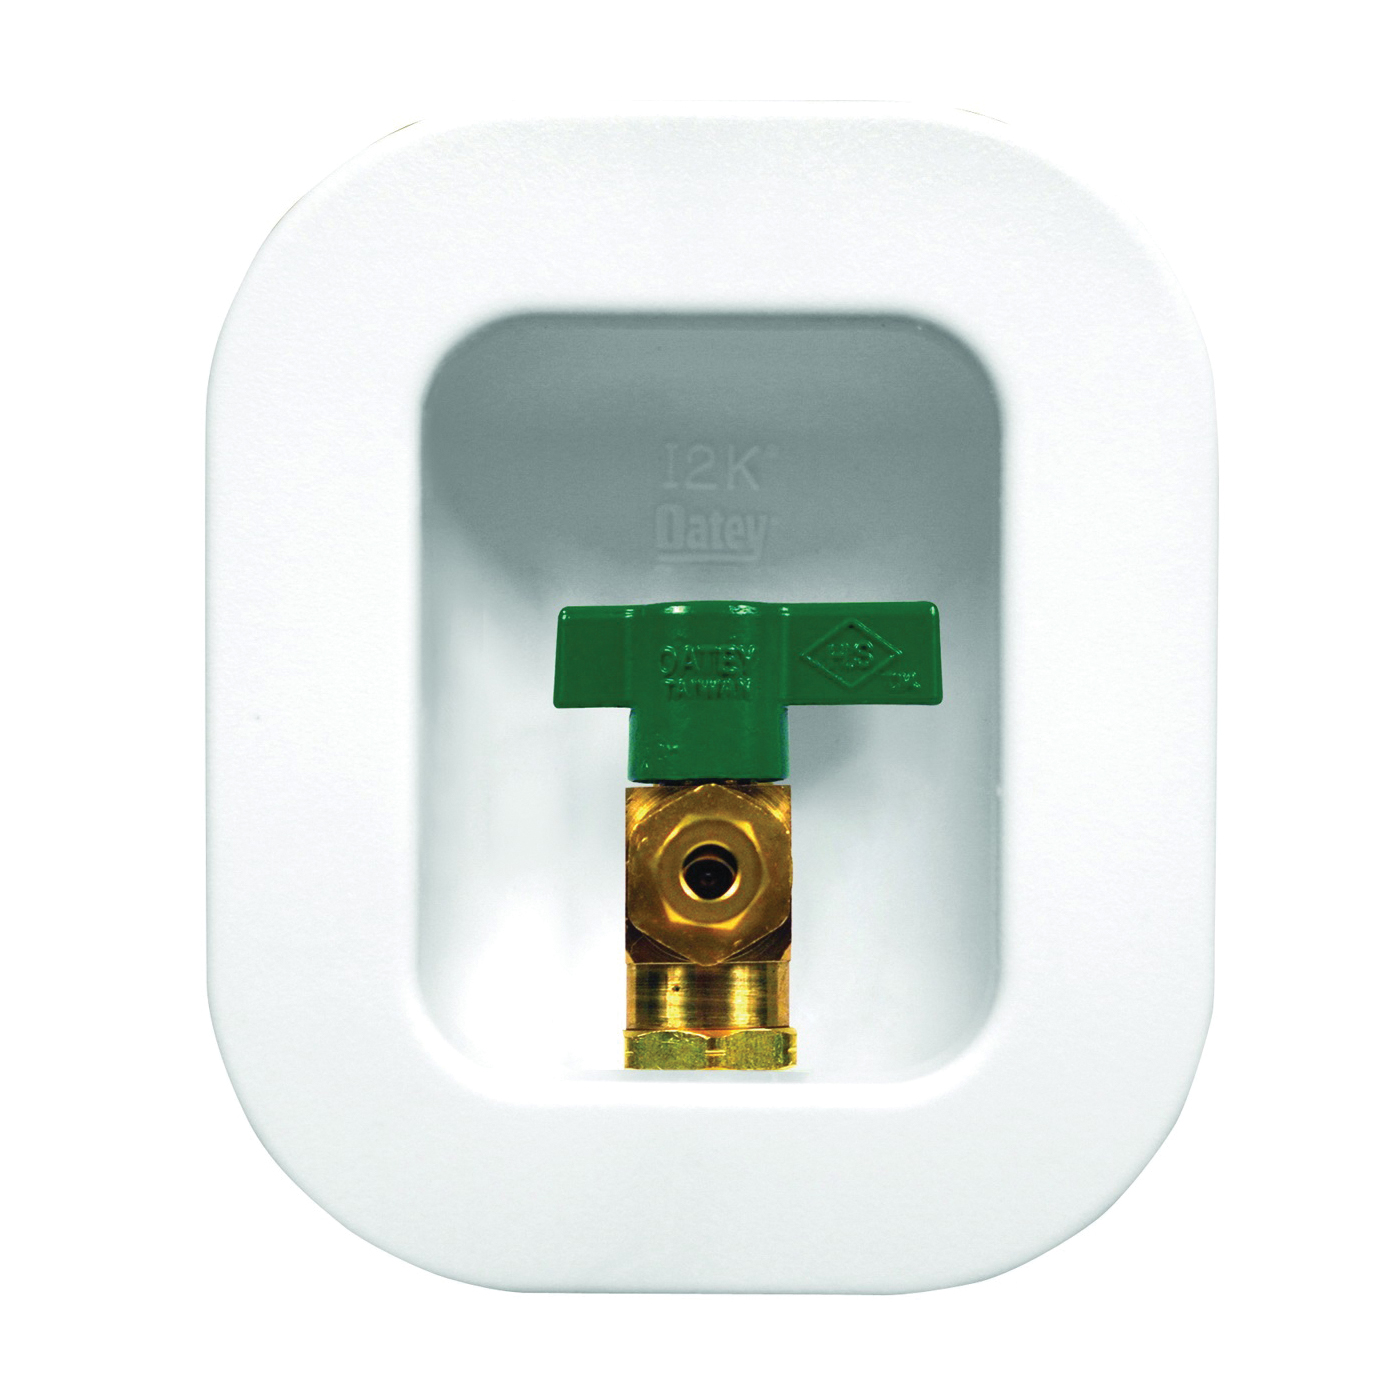 Picture of Oatey 39133 Ice Maker Outlet Box, Brass